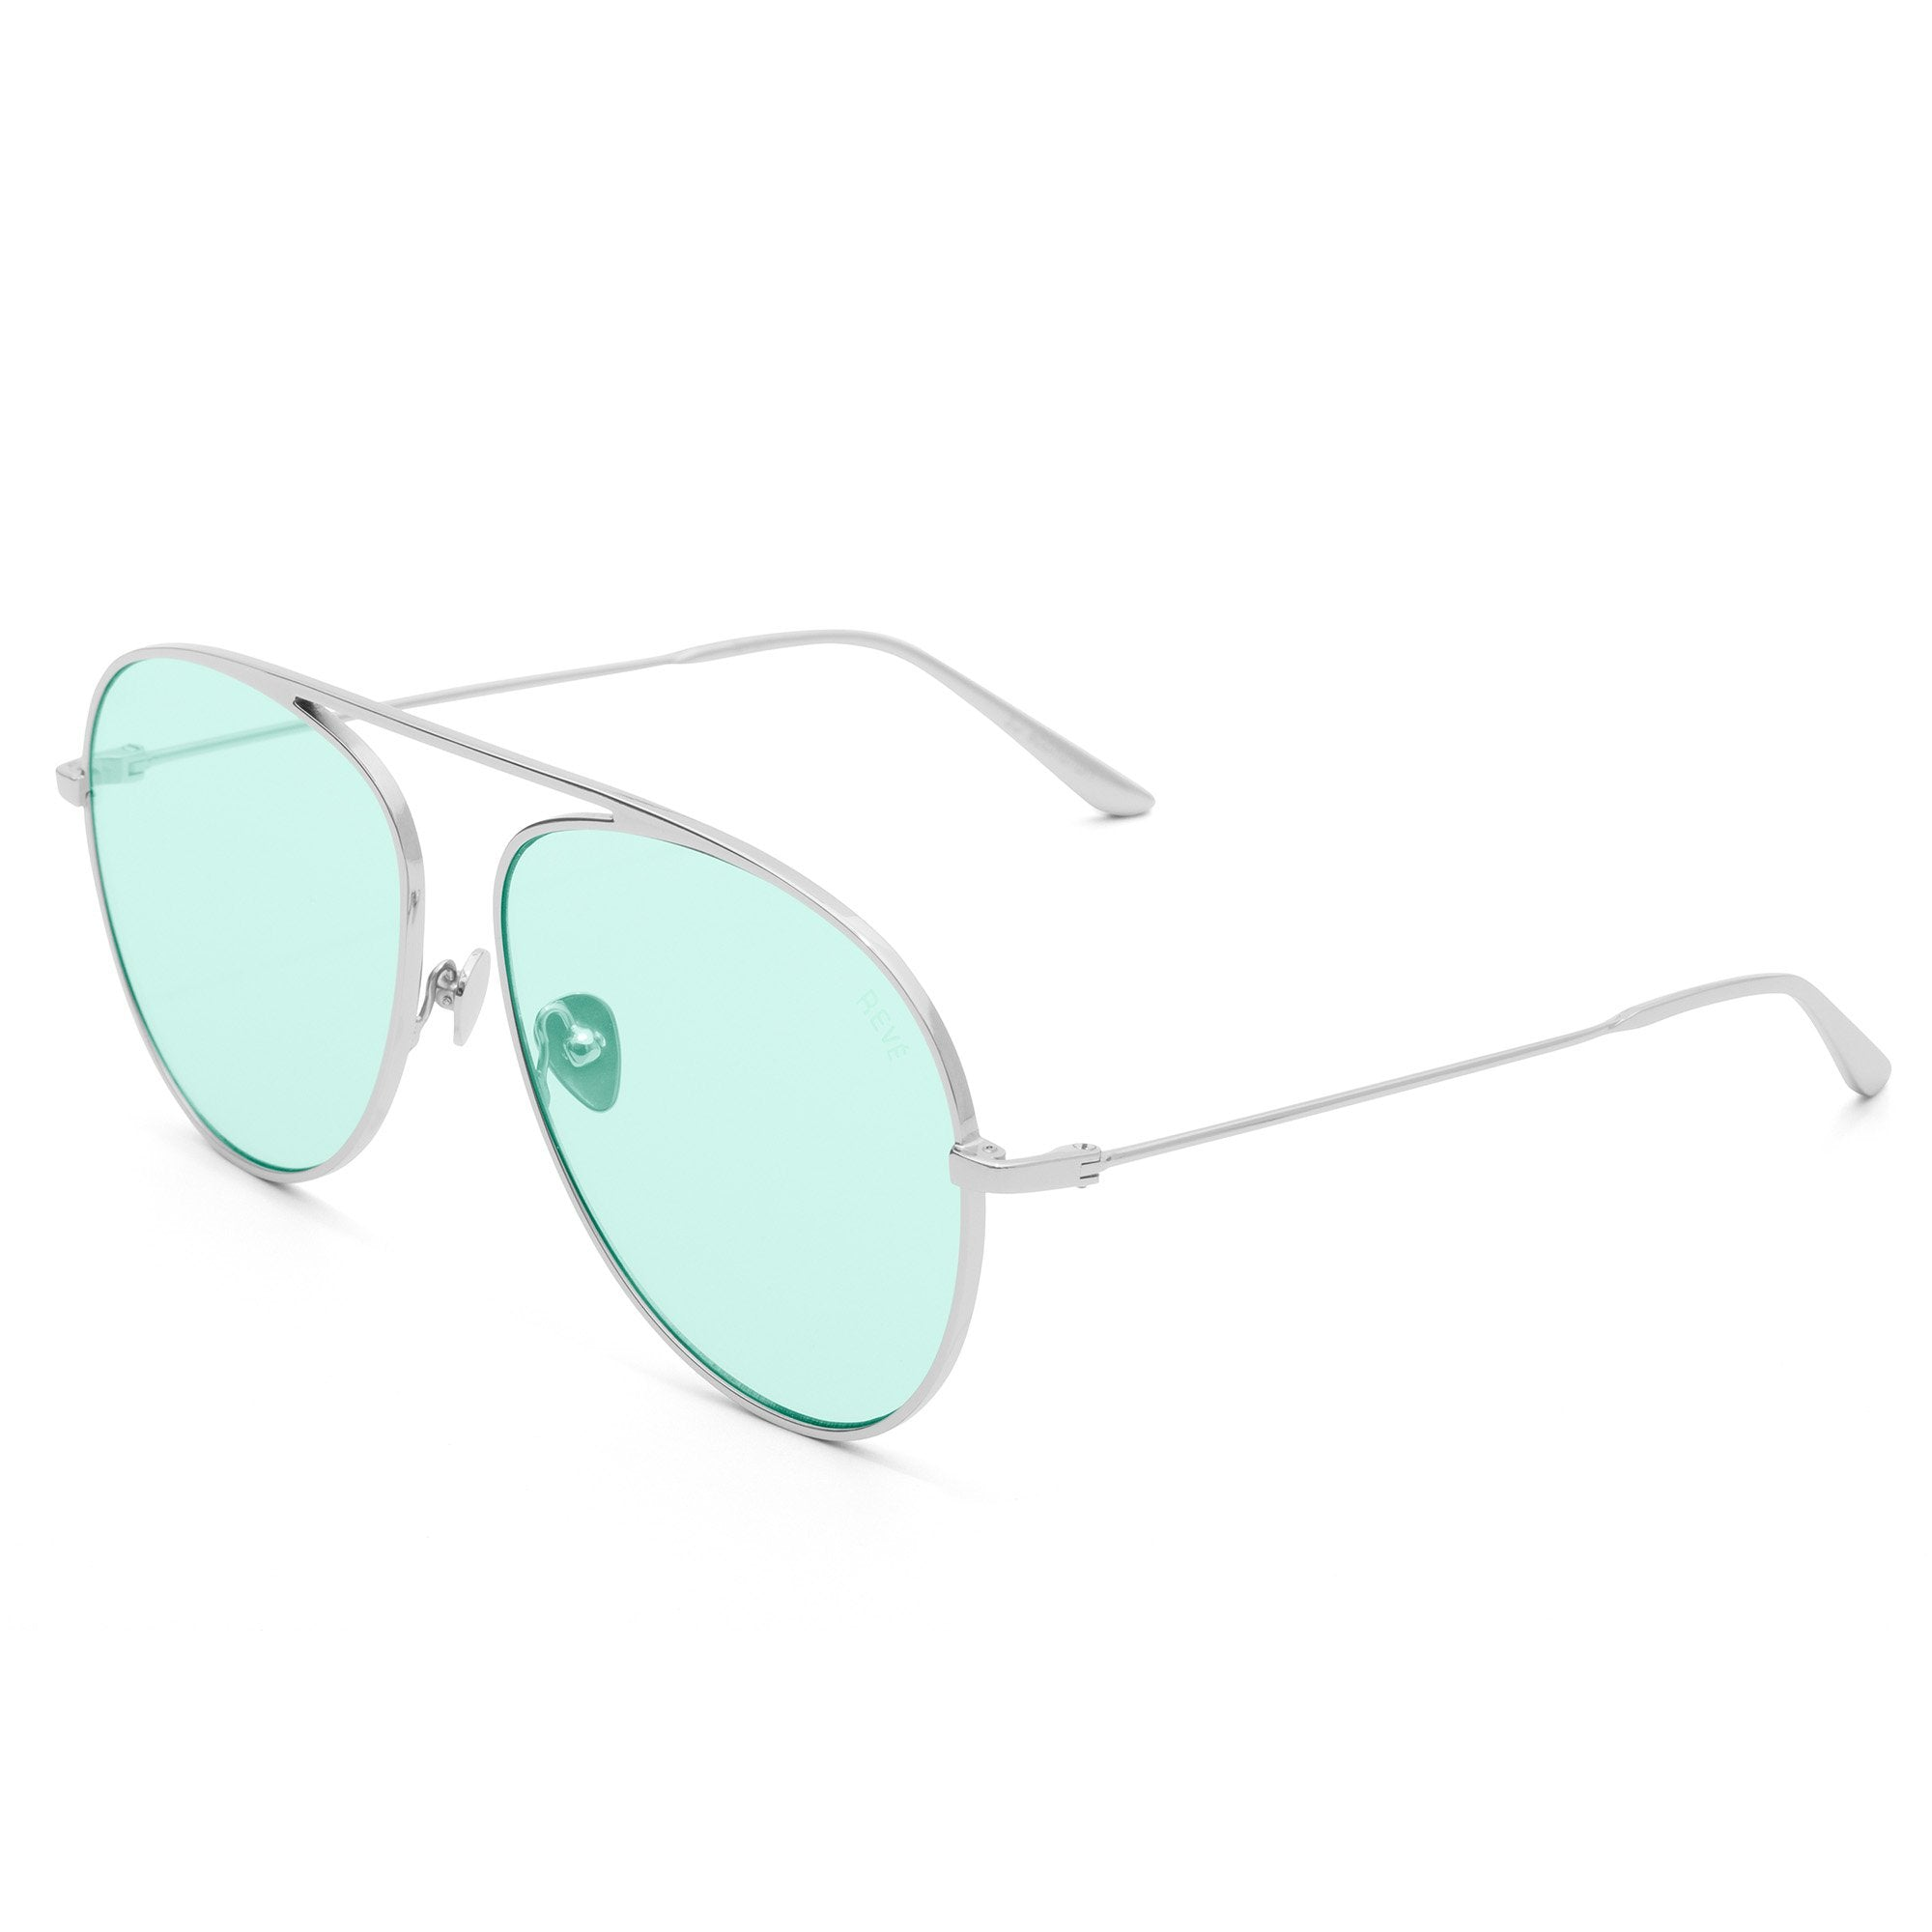 REVE by RENE jellybean sunglasses